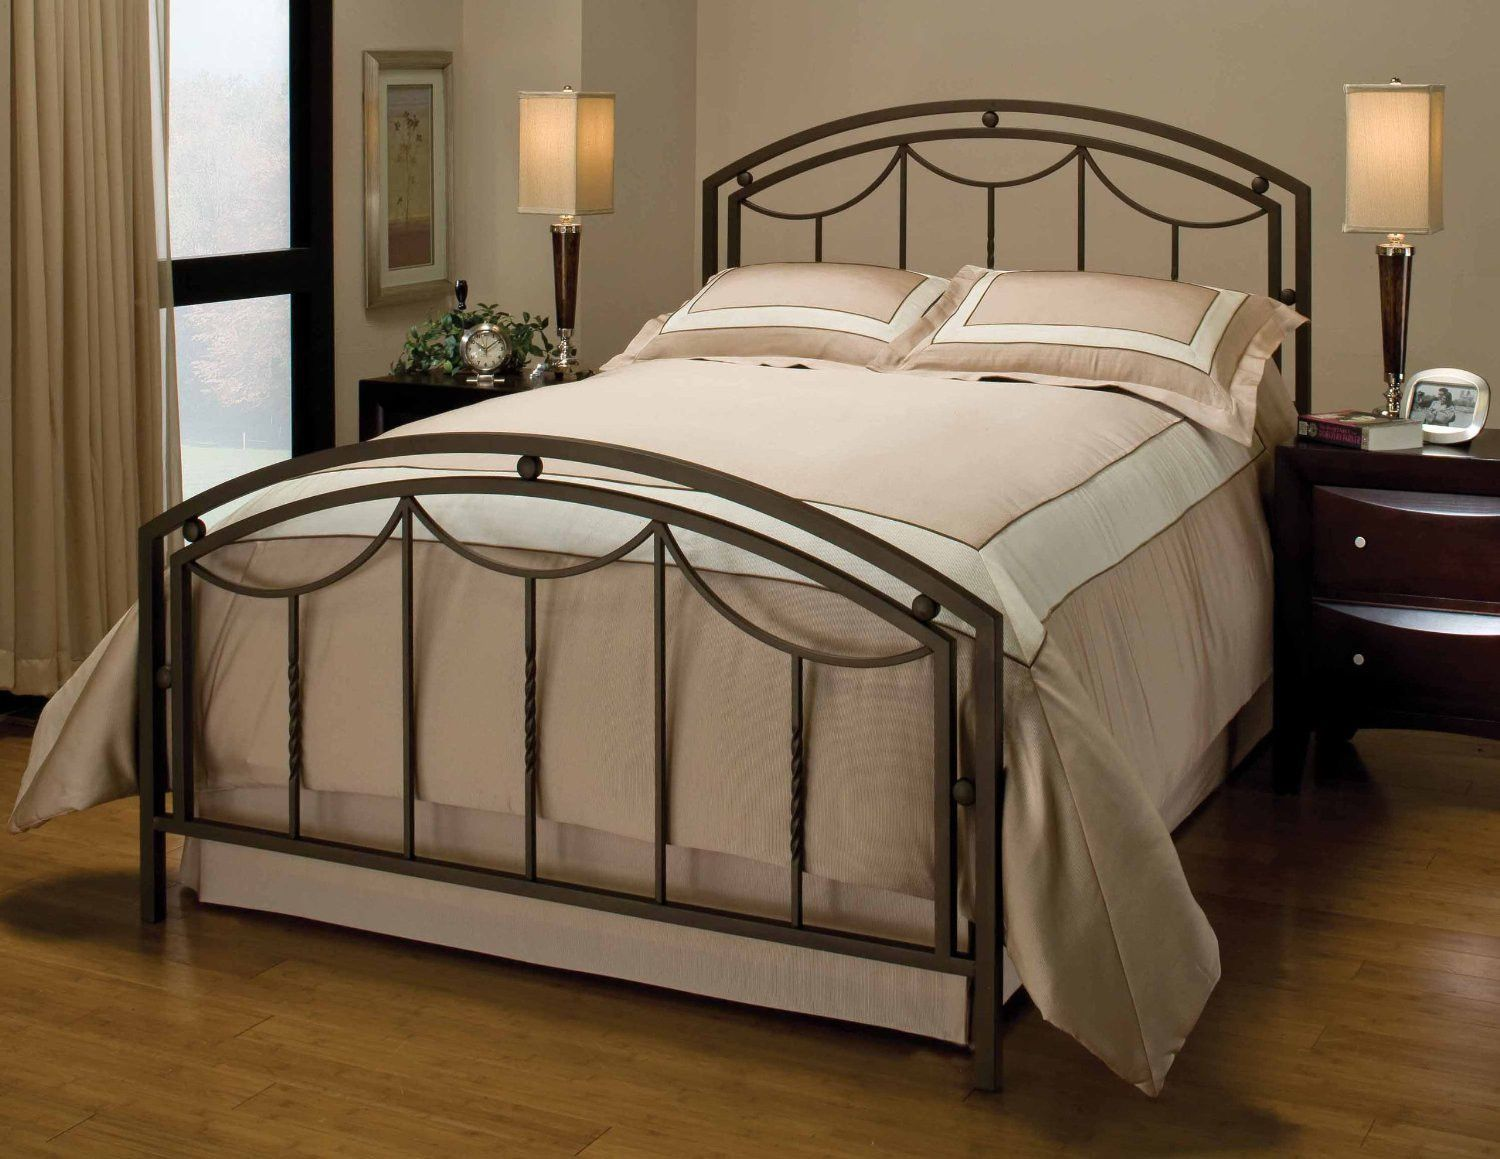 Hillsdale arlington bed set queen rails not included